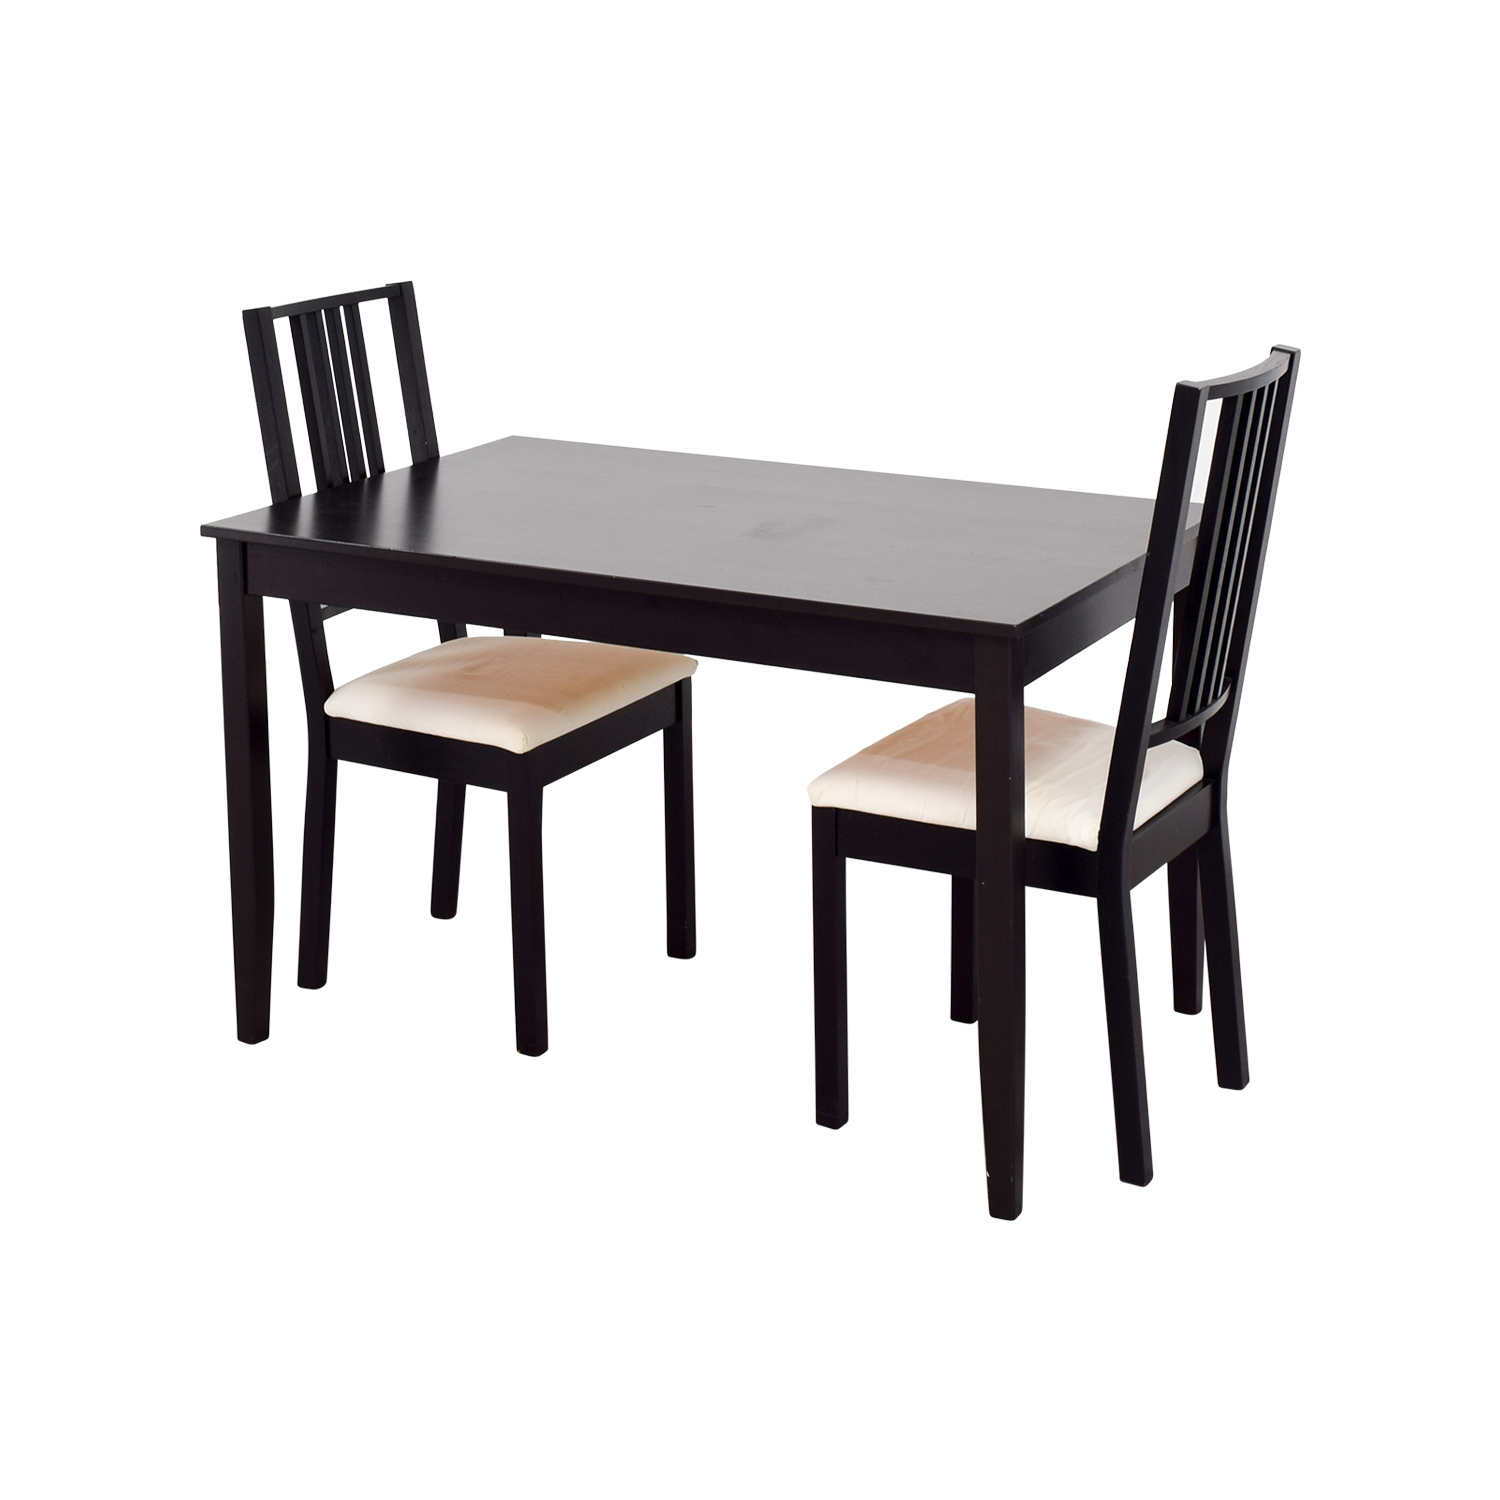 Dining Room Furniture Sets Ikea: IKEA IKEA Three-Piece Dining Set / Tables